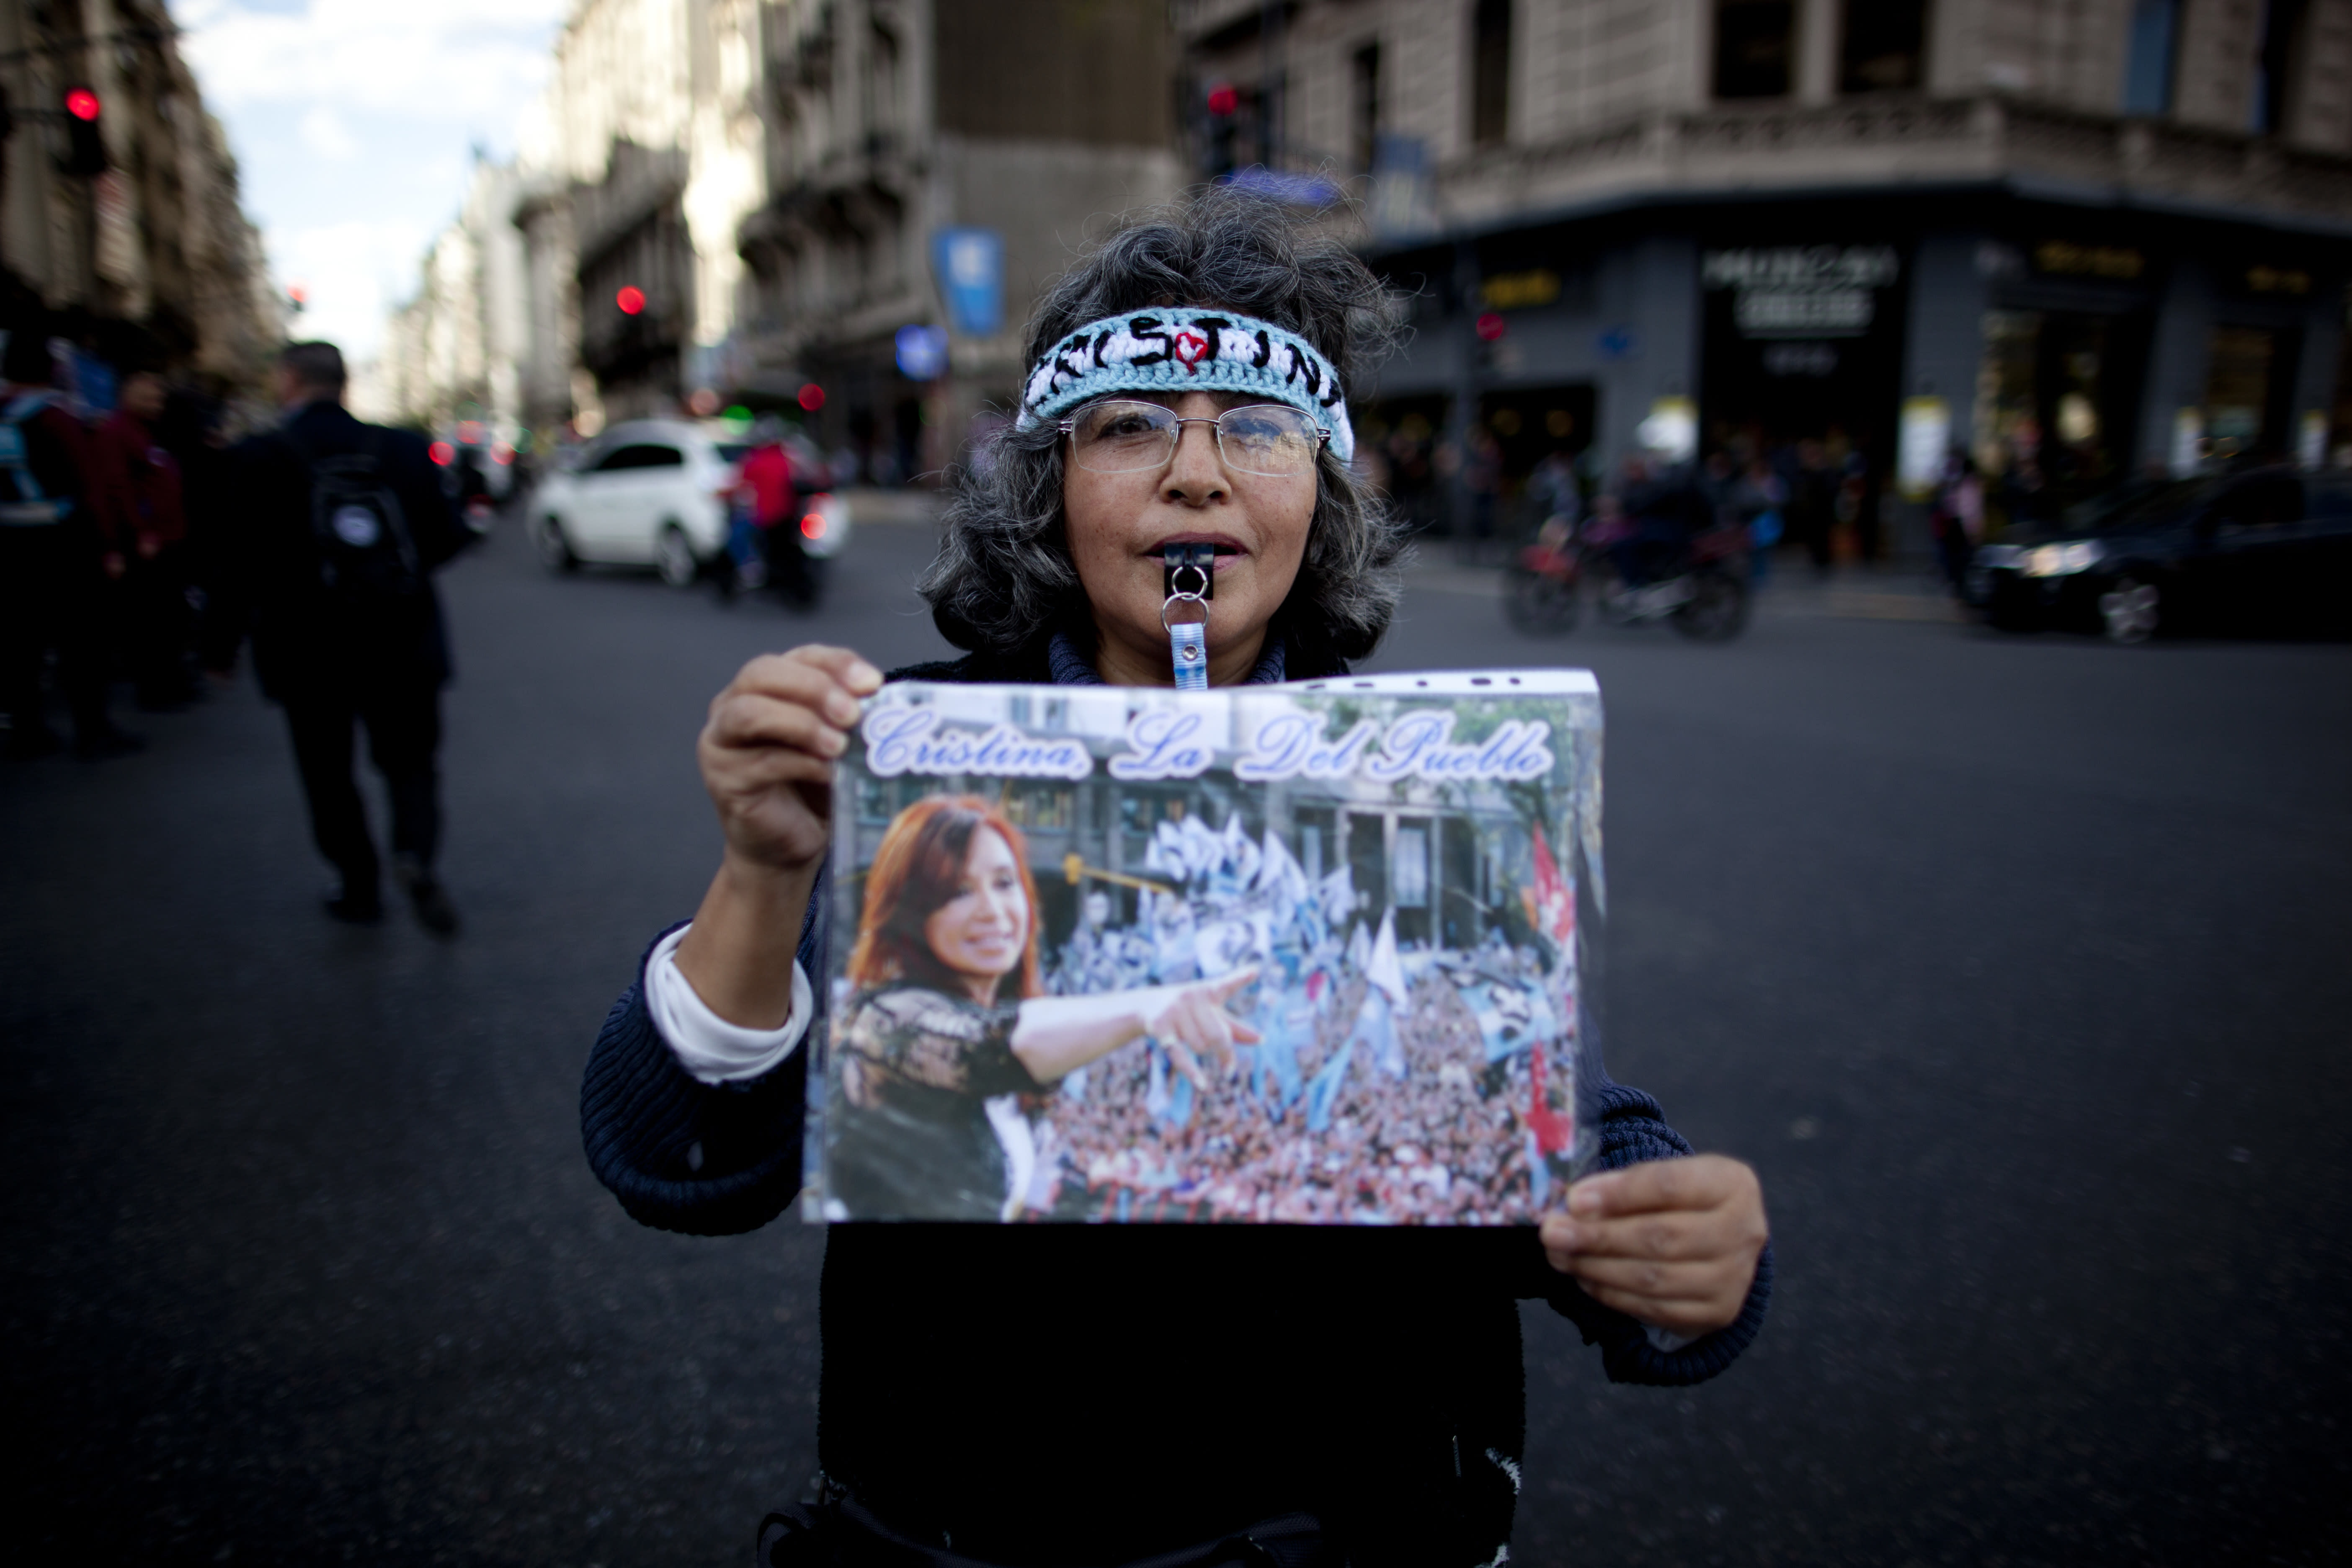 """In this Oct. 3, 2018 photo, Teresa Rollano, who is employed as a maid, holds up an a collage of former President Cristina Fernandez she keeps in a plastic protective sleeve, during a demonstration demanding improved conditions for disabled retirees, in Buenos Aires, Argentina. """"Many women voted in the government of Mauricio Macri and now they regret it,"""" said Rollano, during the demonstration where protesters chanted, """"Stay strong, Cristina"""" and held signs saying, """"Now more than ever, soldiers of Cristina."""" (AP Photo/Natacha Pisarenko)"""